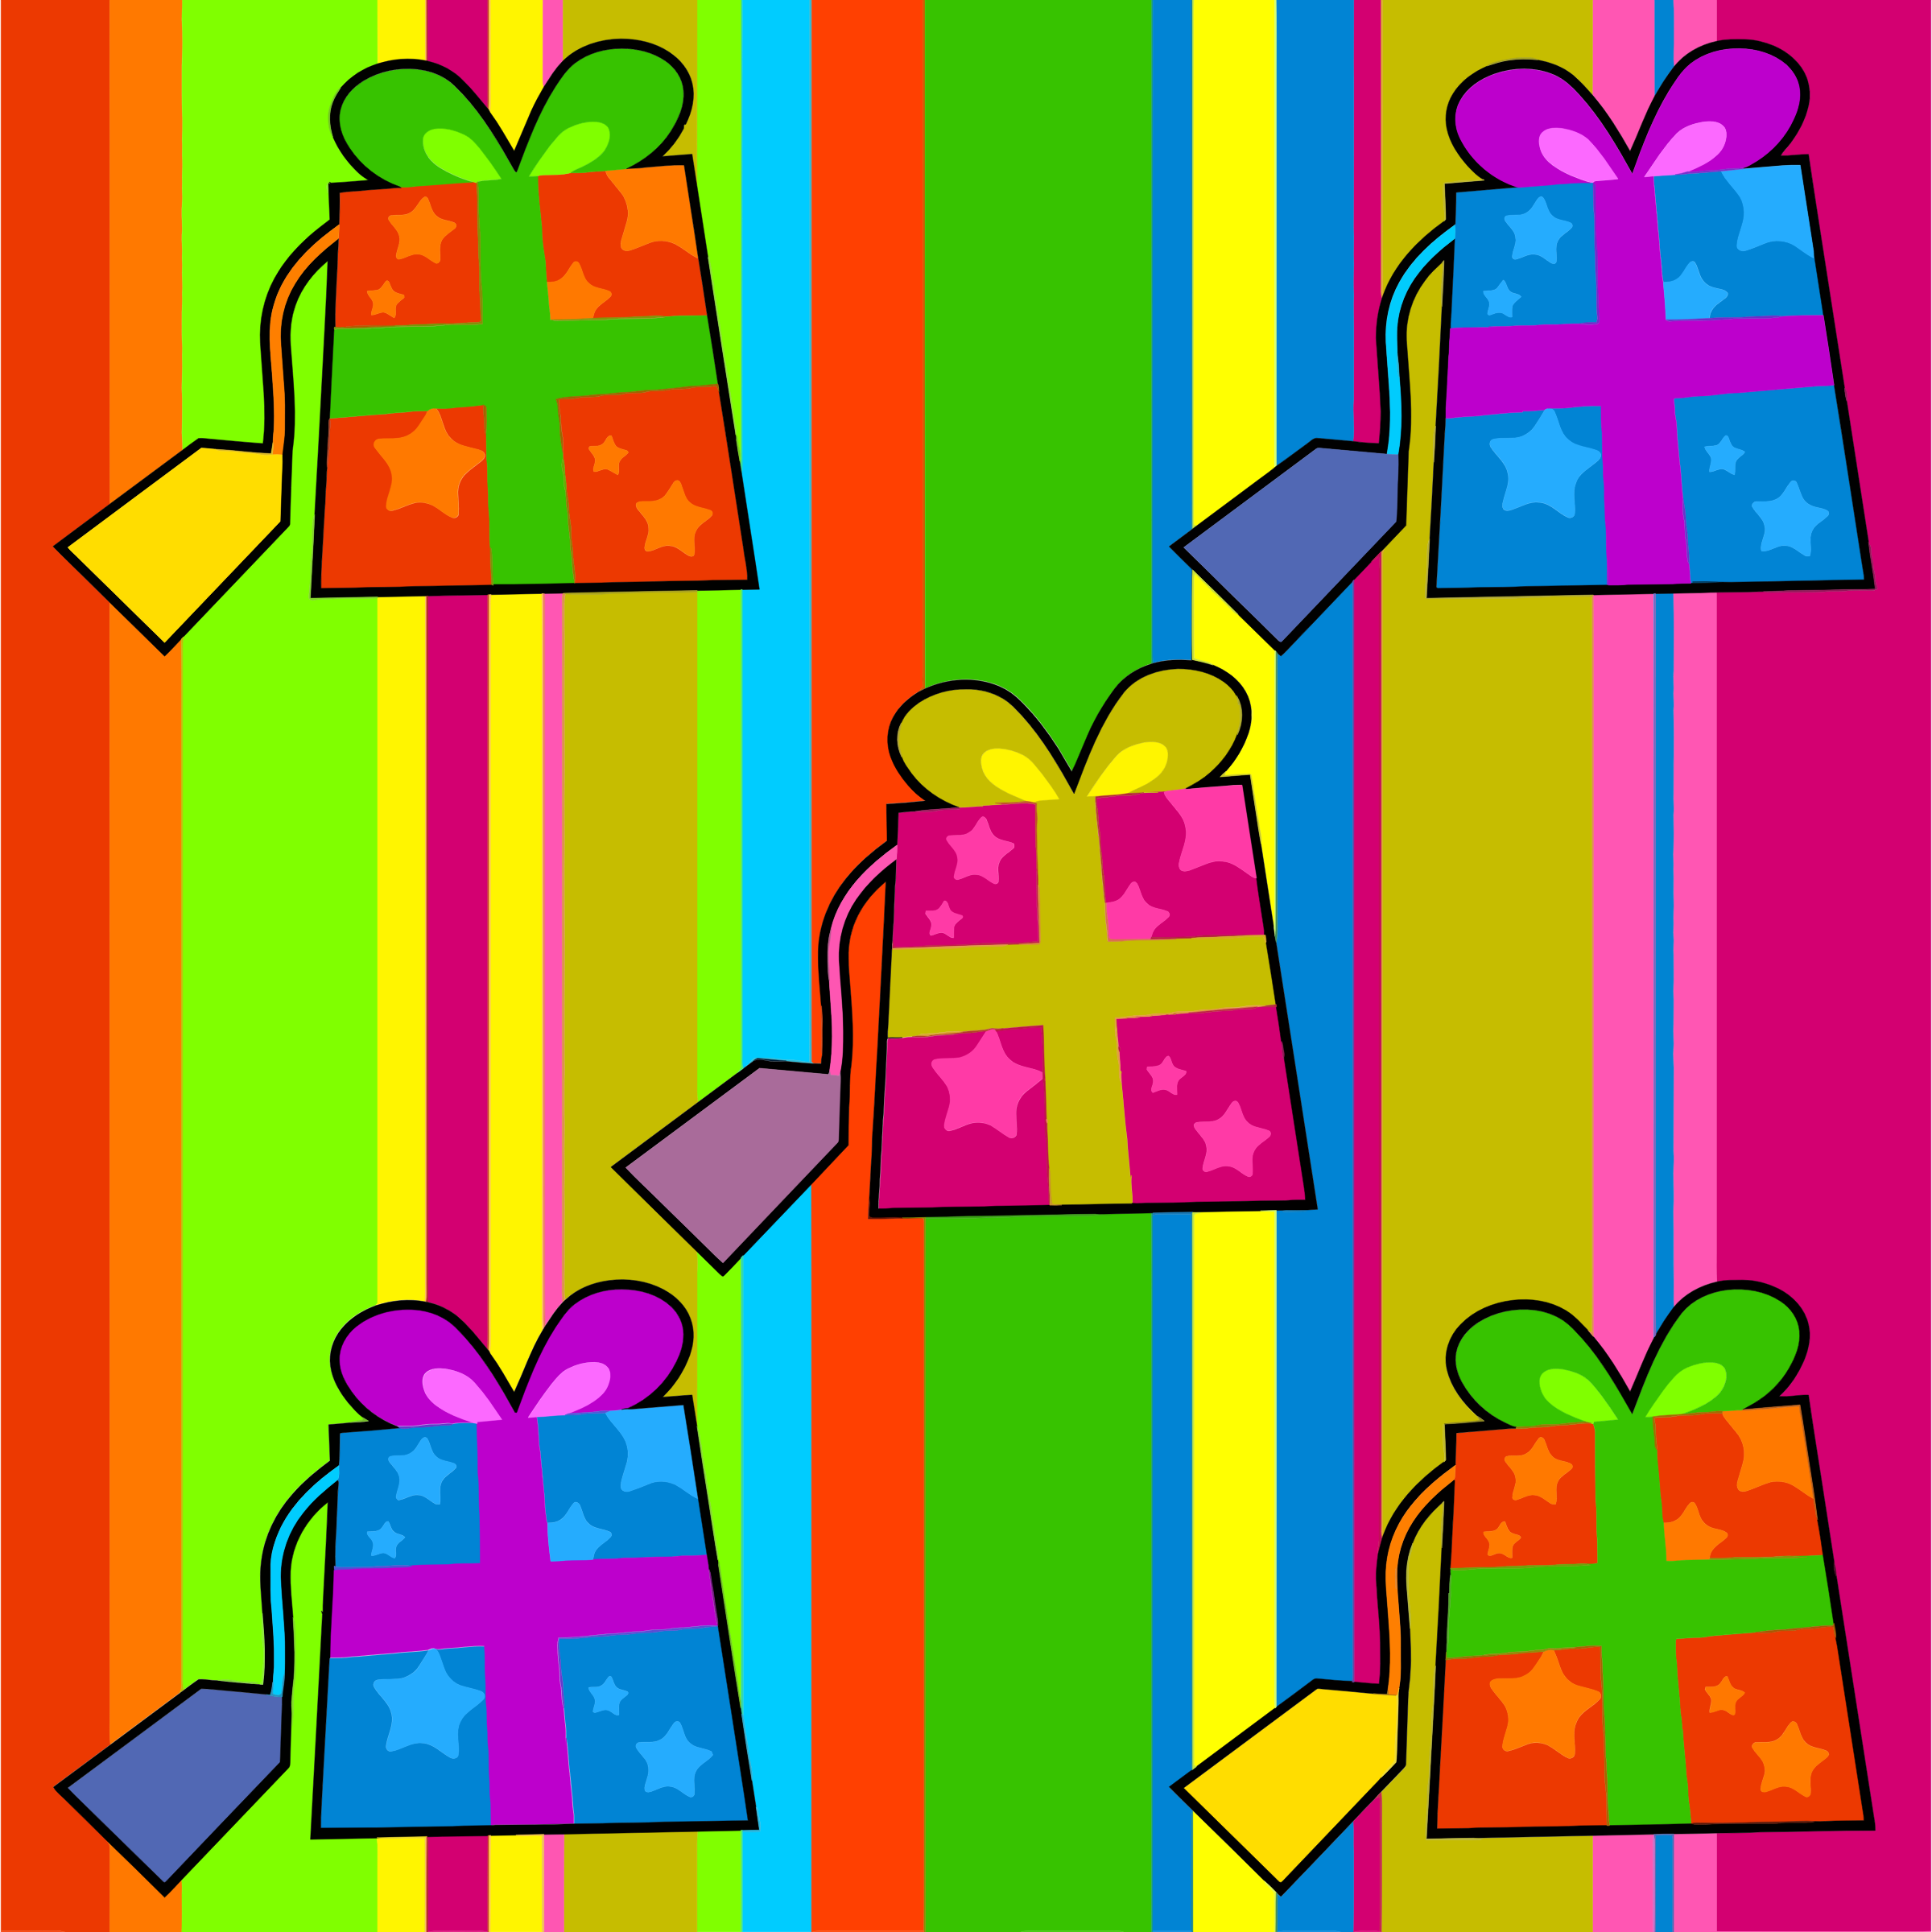 Gifts Presents by GDJ